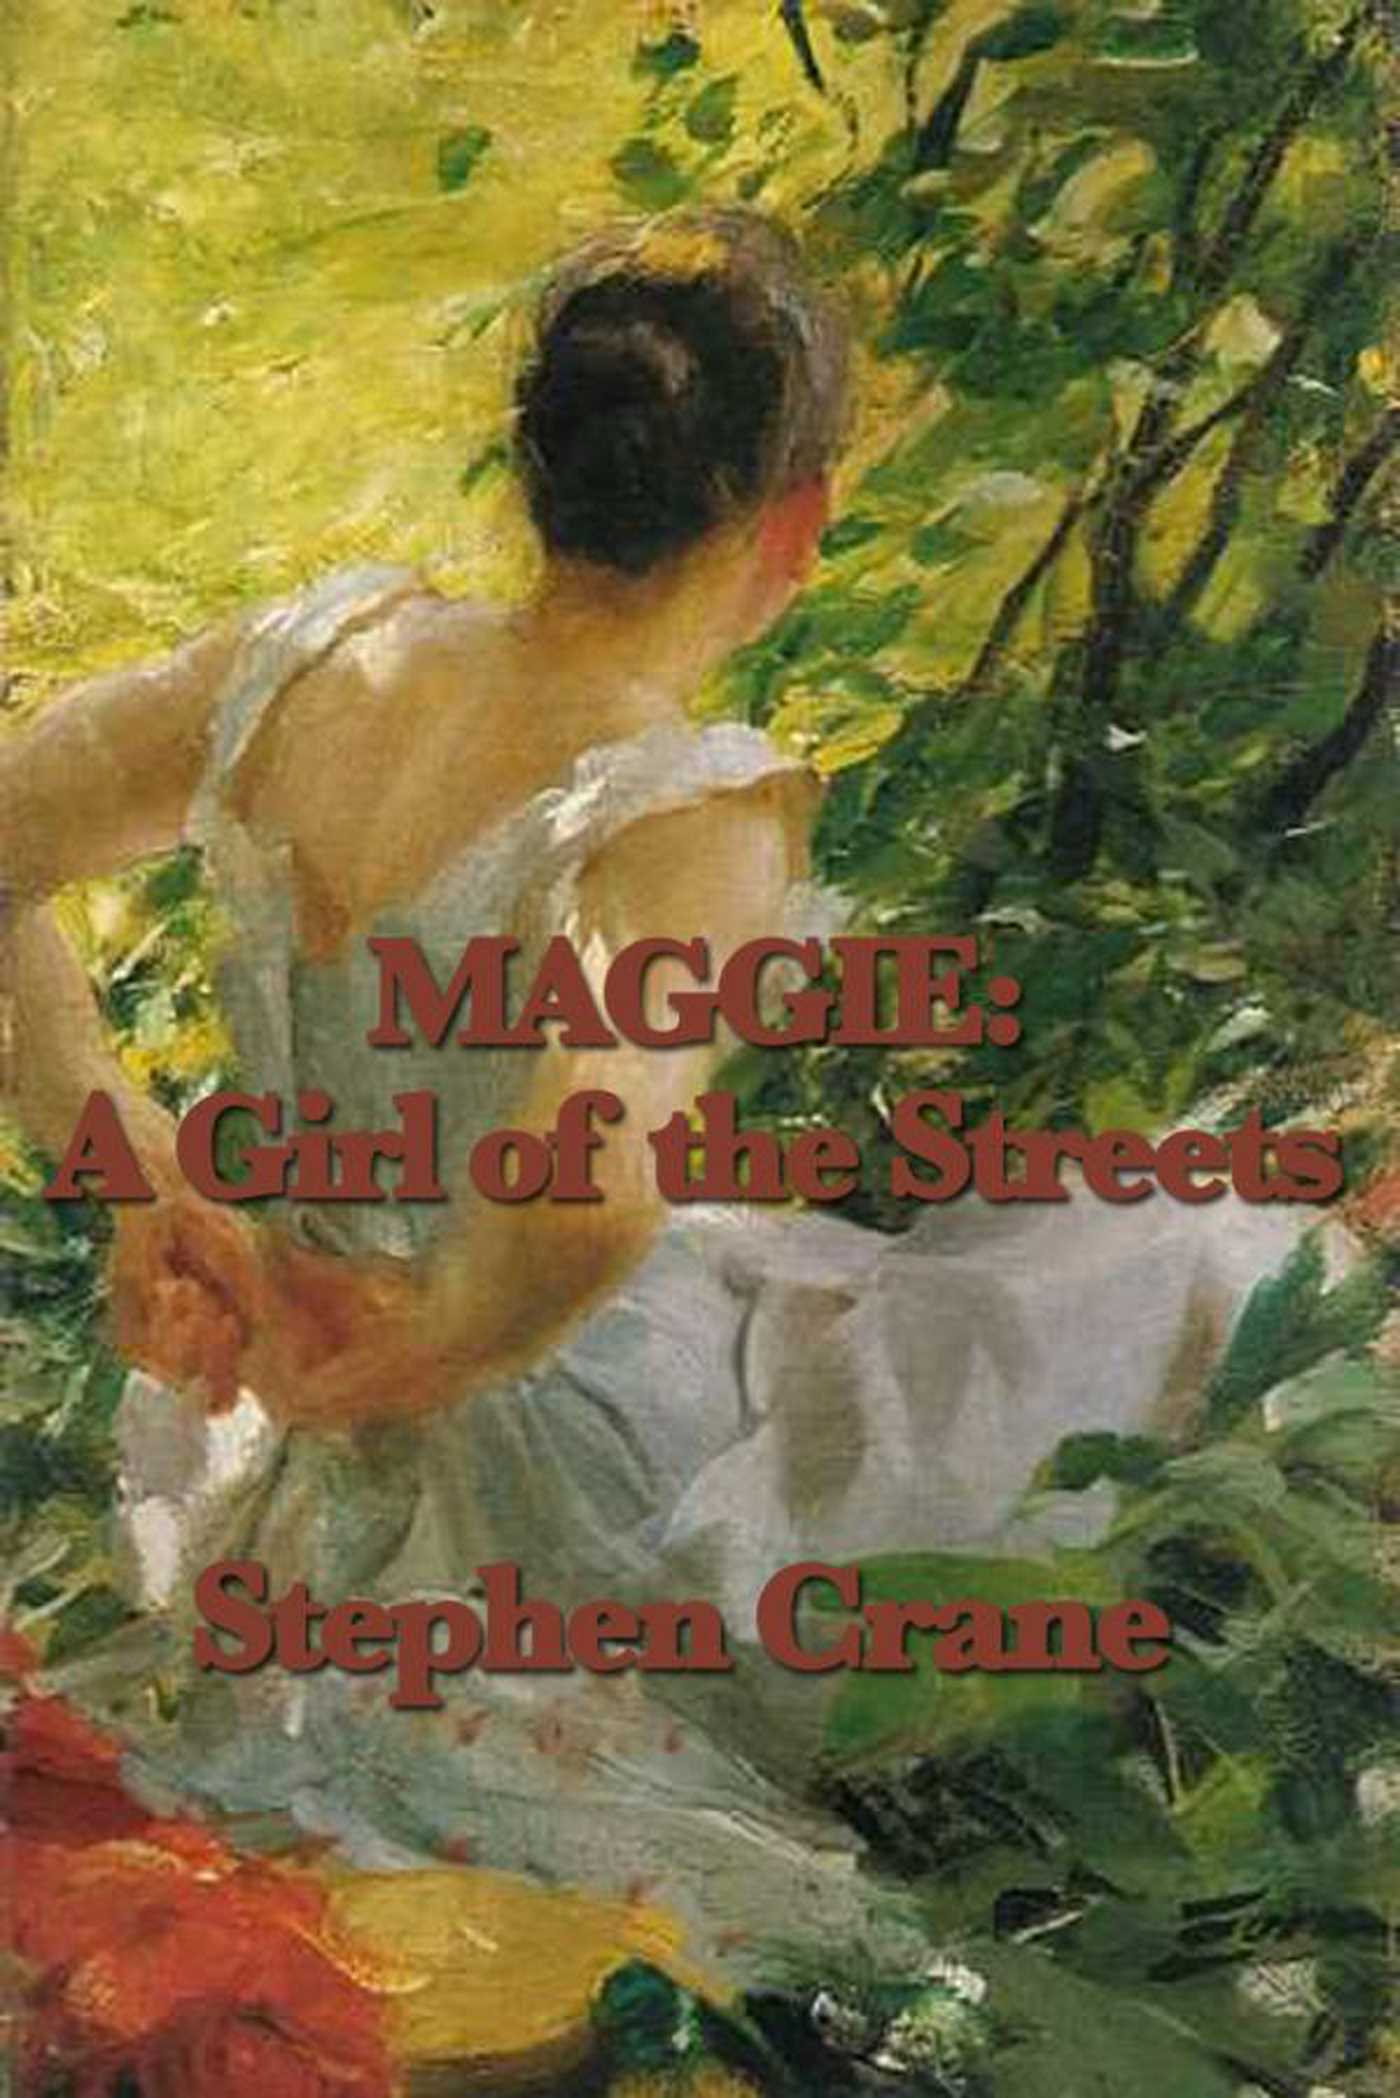 The Environment of Maggie in Crane's